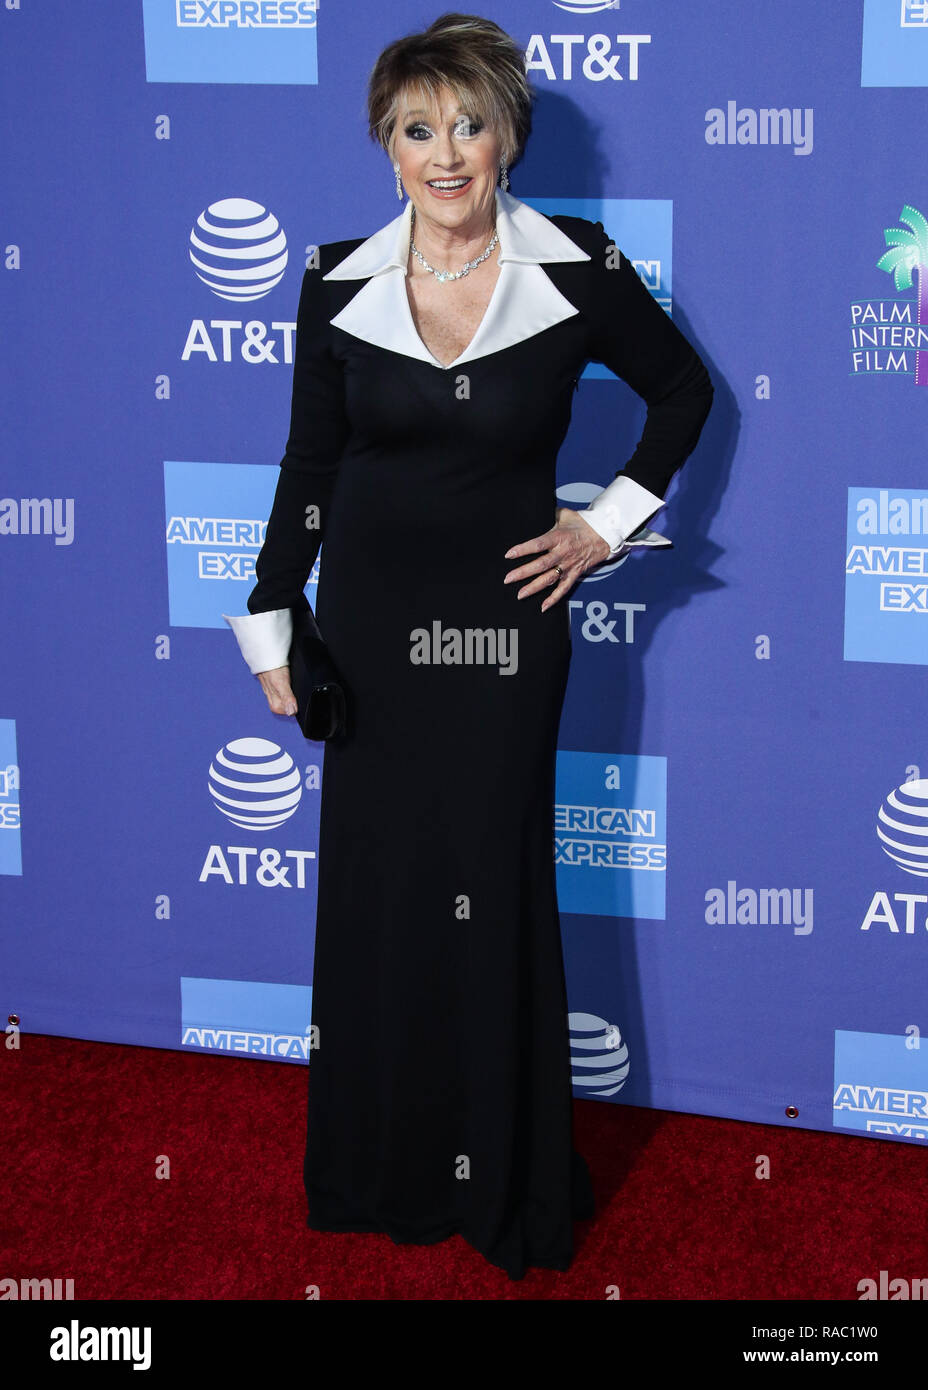 Palm Springs, California, USA. 3rd January, 2019. Lorna Luft arrives at the 30th Annual Palm Springs International Film Festival Awards Gala held at the Palm Springs Convention Center on January 3, 2019 in Palm Springs, California, United States. (Photo by Xavier Collin/Image Press Agency) Credit: Image Press Agency/Alamy Live News - Stock Image